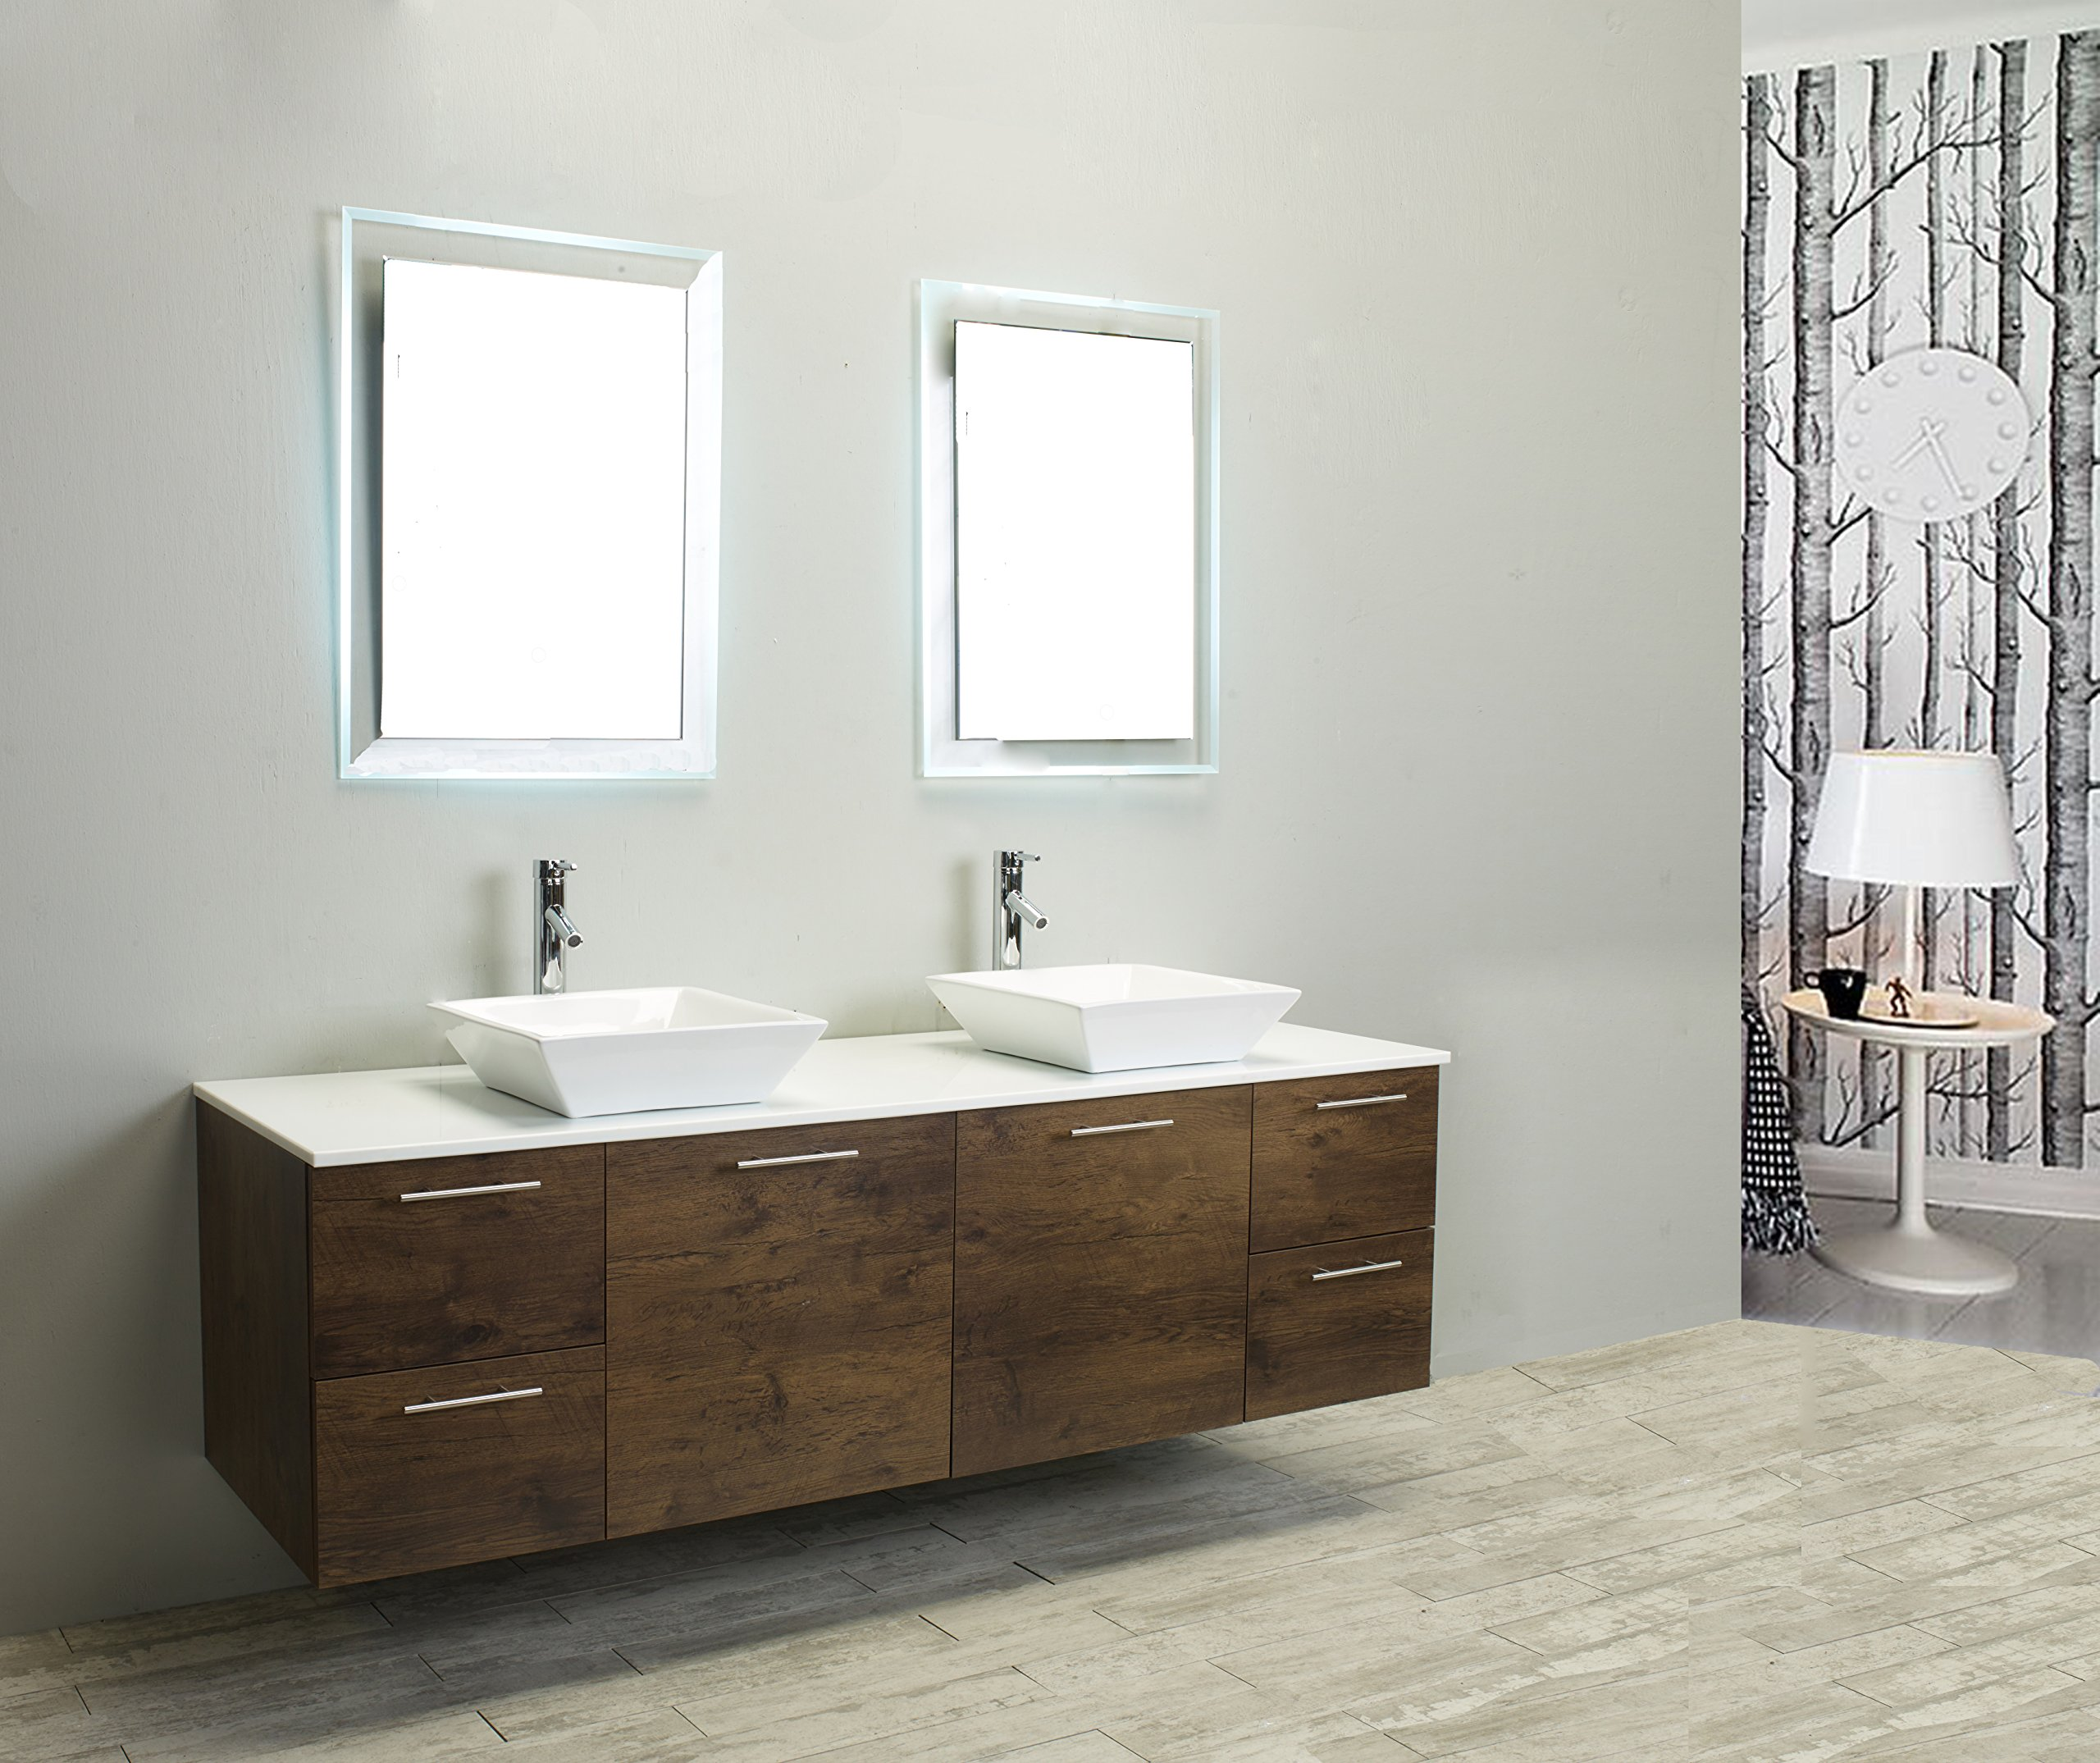 Eviva Luxury 72-inch Rosewood bathroom cabinet only by Eviva (Image #2)